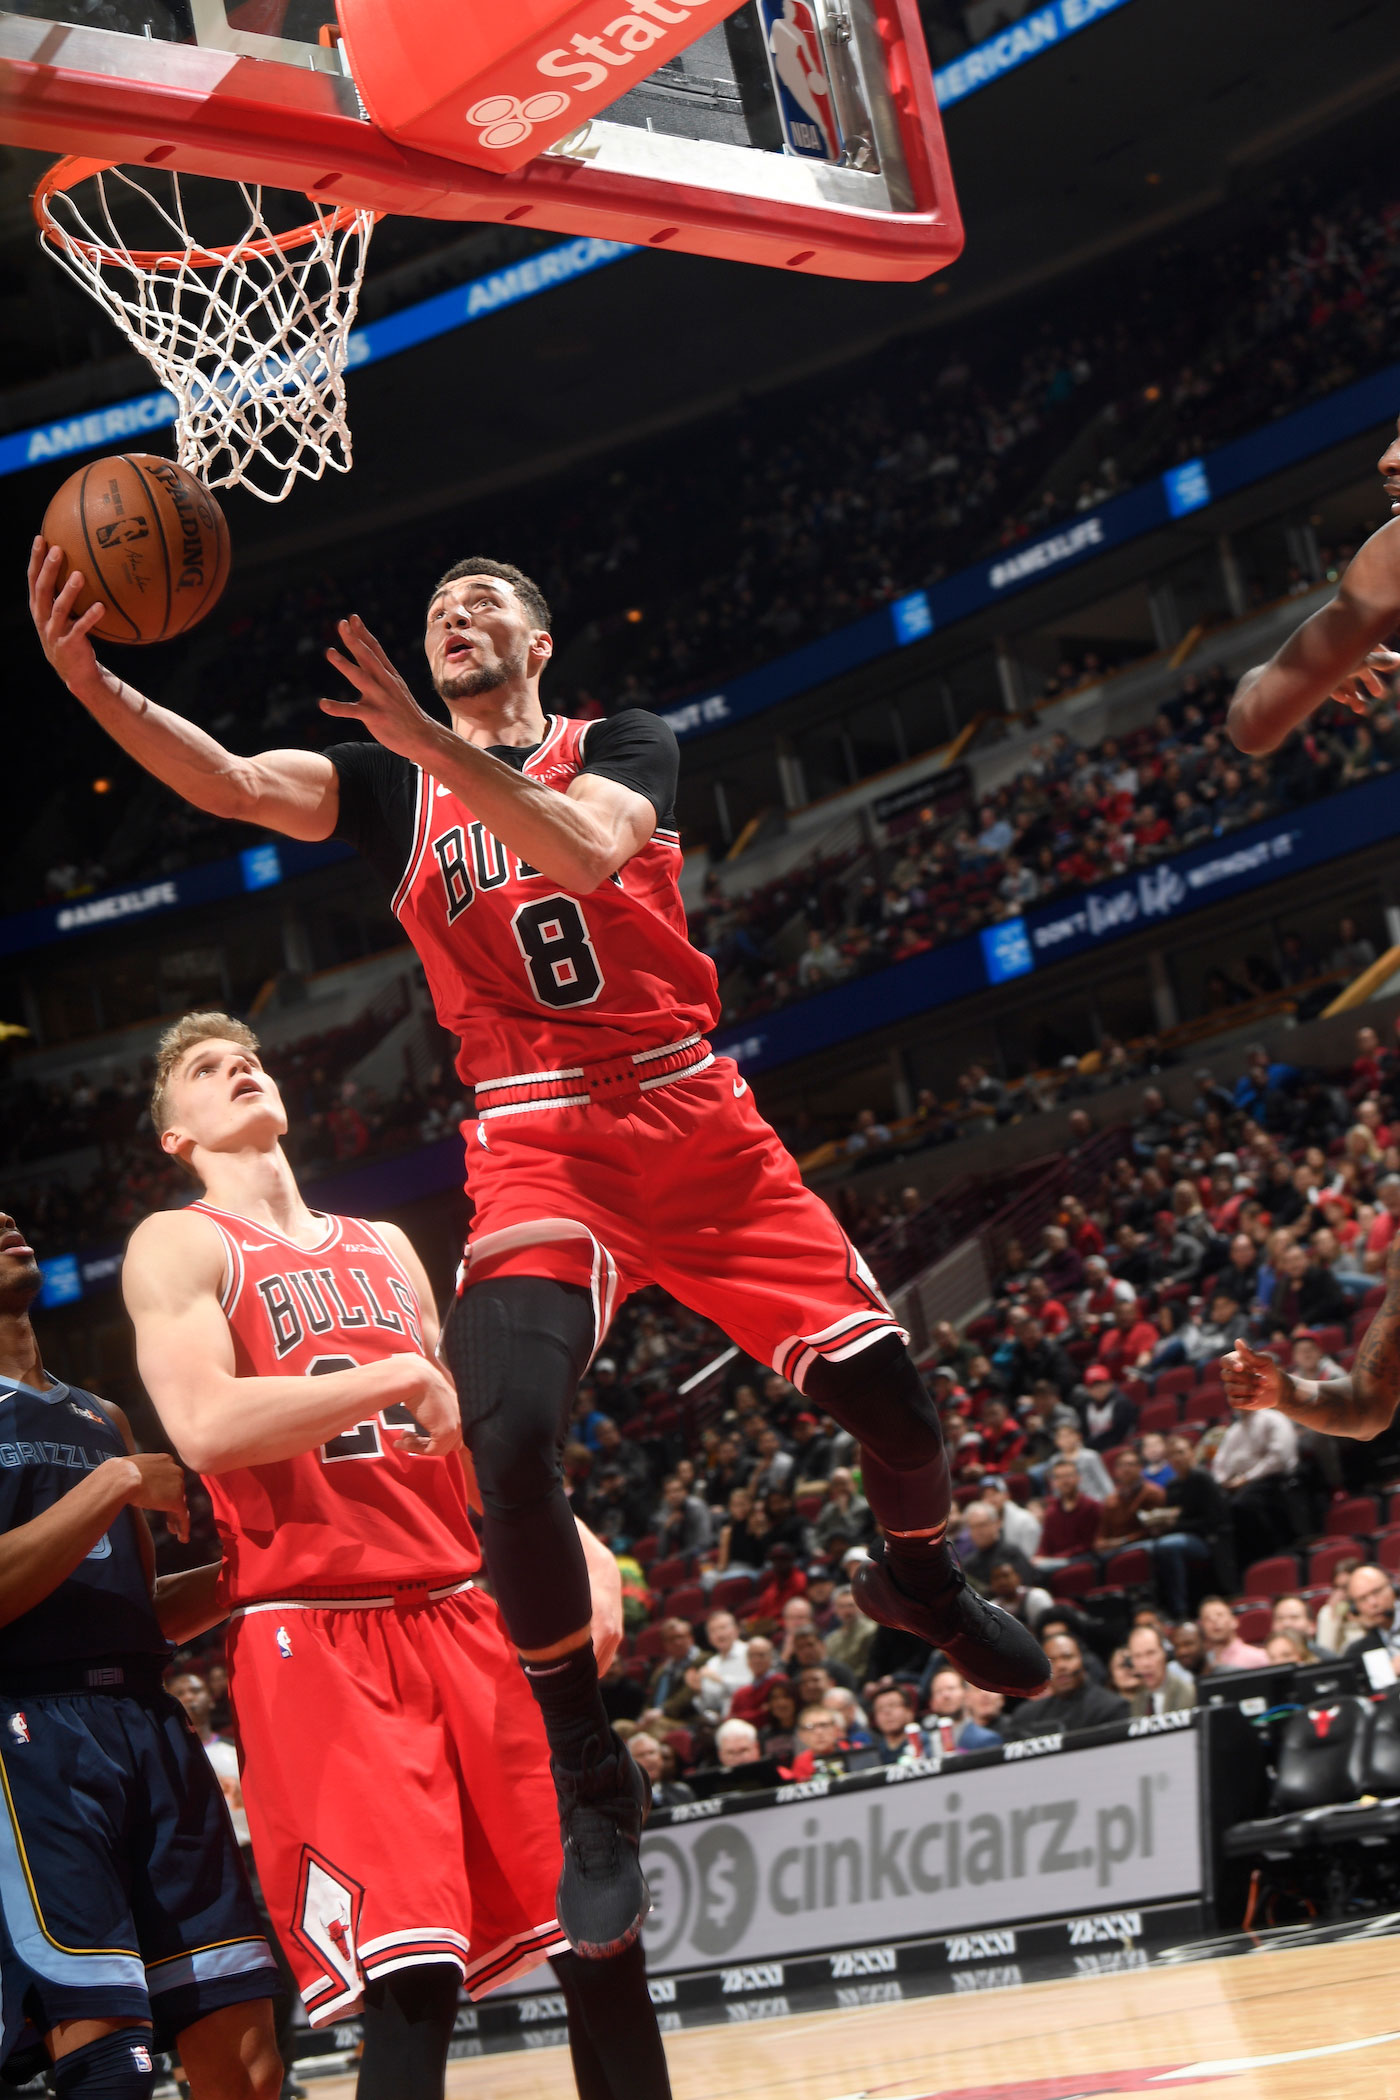 Zach LaVine attempts a layup during a game against the Memphis Grizzlies.